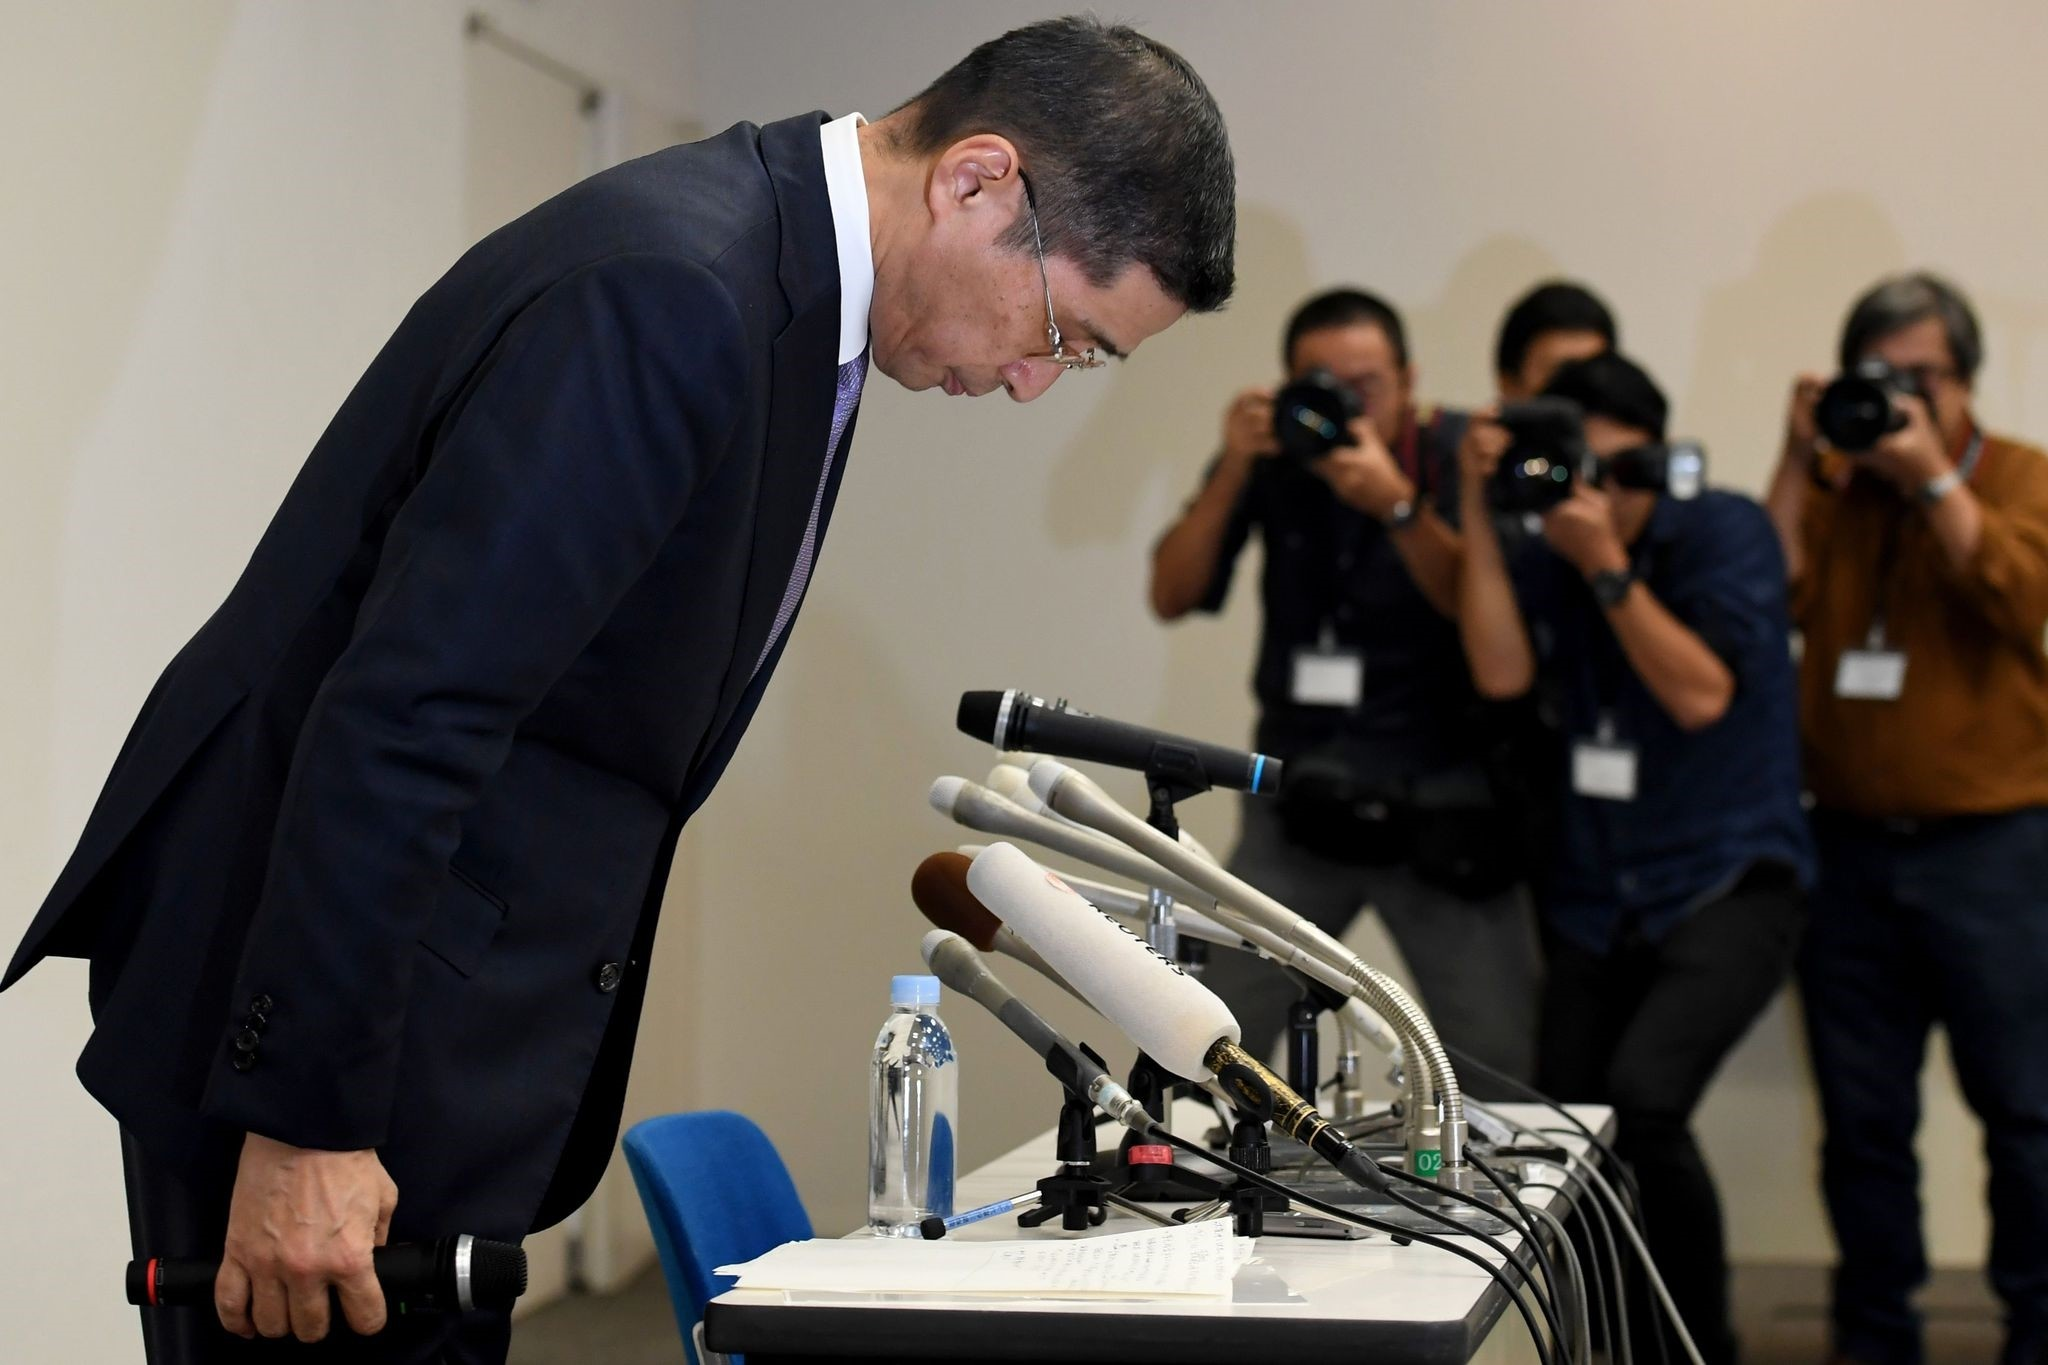 Nissan Motors CEO Hiroto Saikawa bows to start a press conference regarding the recent inspection issue in the Japanese market at its headquarters in Yokohama.